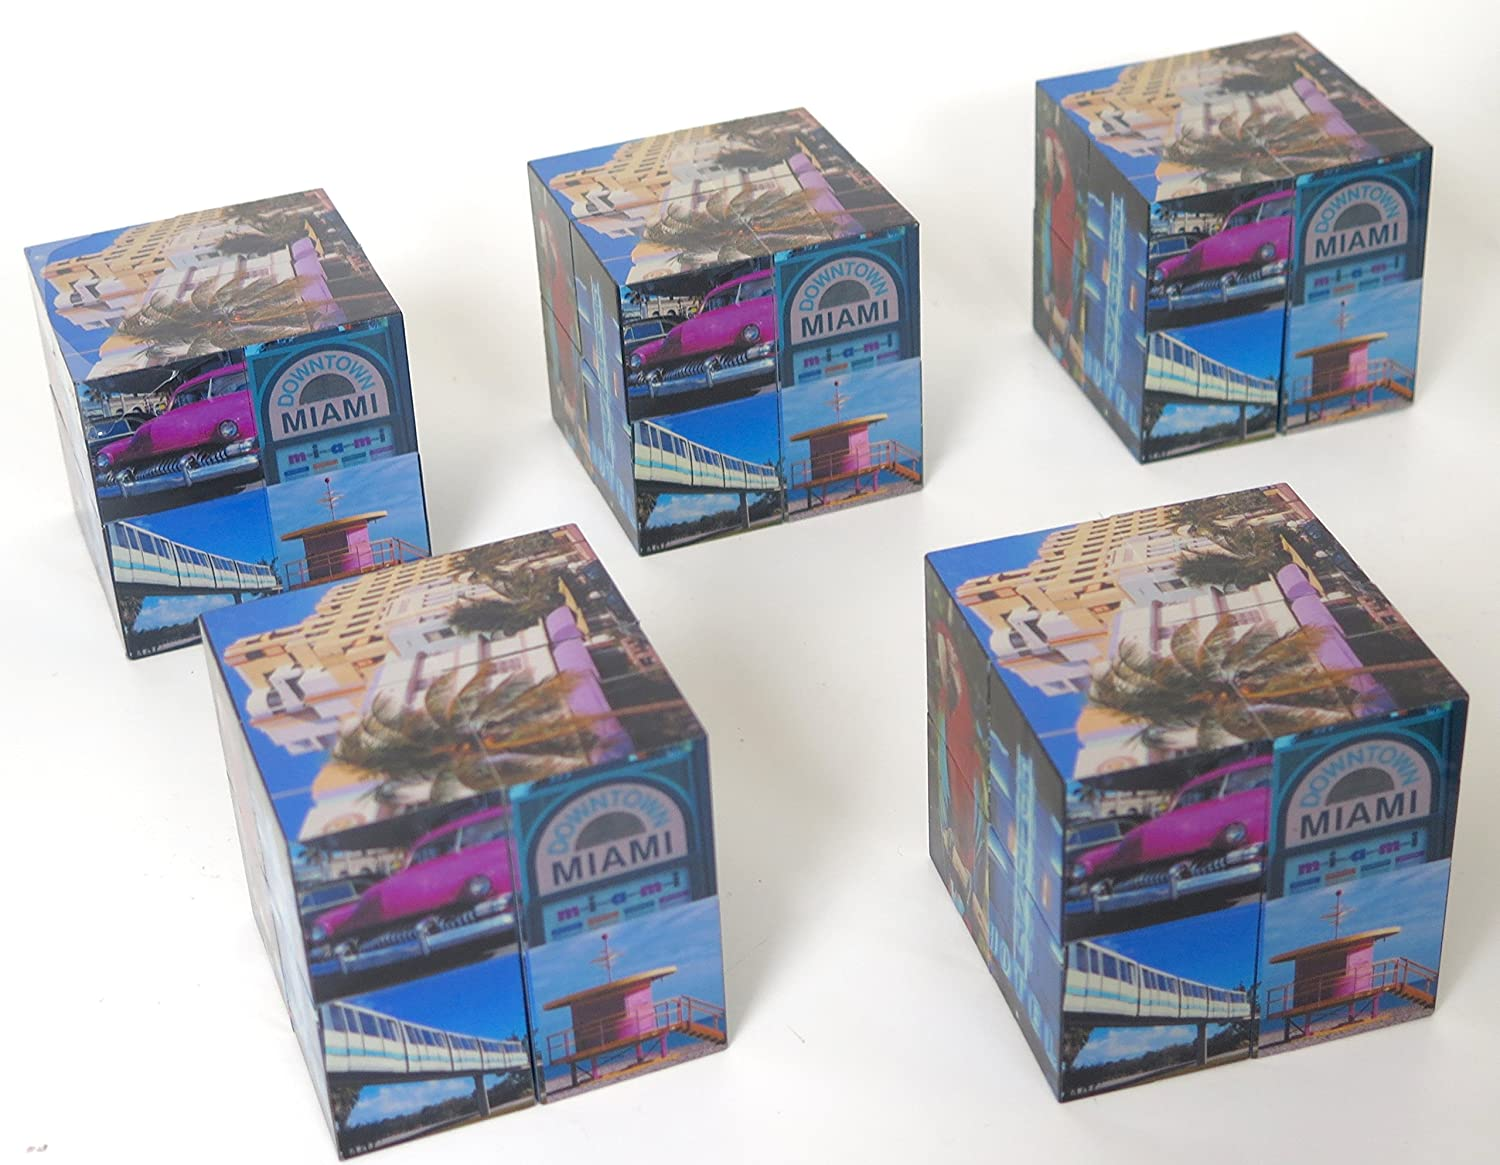 Miami souvenir Photo collage Novelty cube 5 pack. As it unfolds multiple scenes and landmarks are revealed.